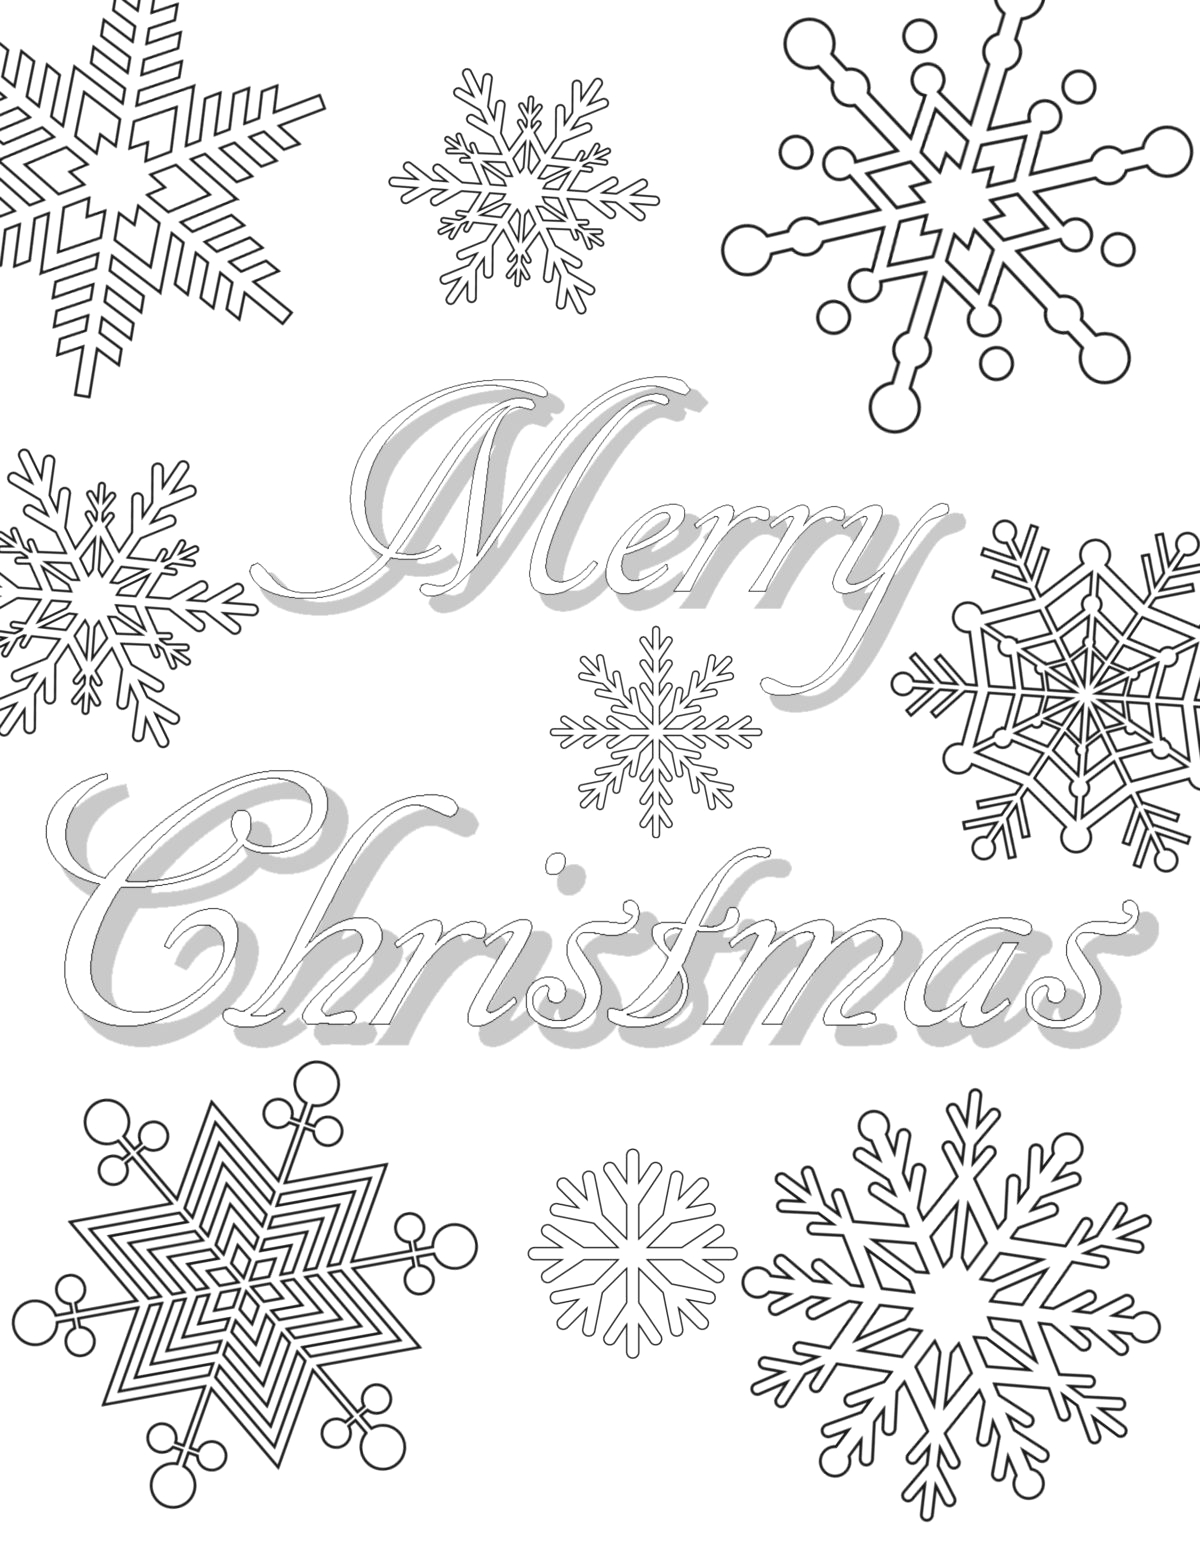 Free Online Coloring Pages for Adults Christmas Free Printable Christmas Coloring Pages for Adults